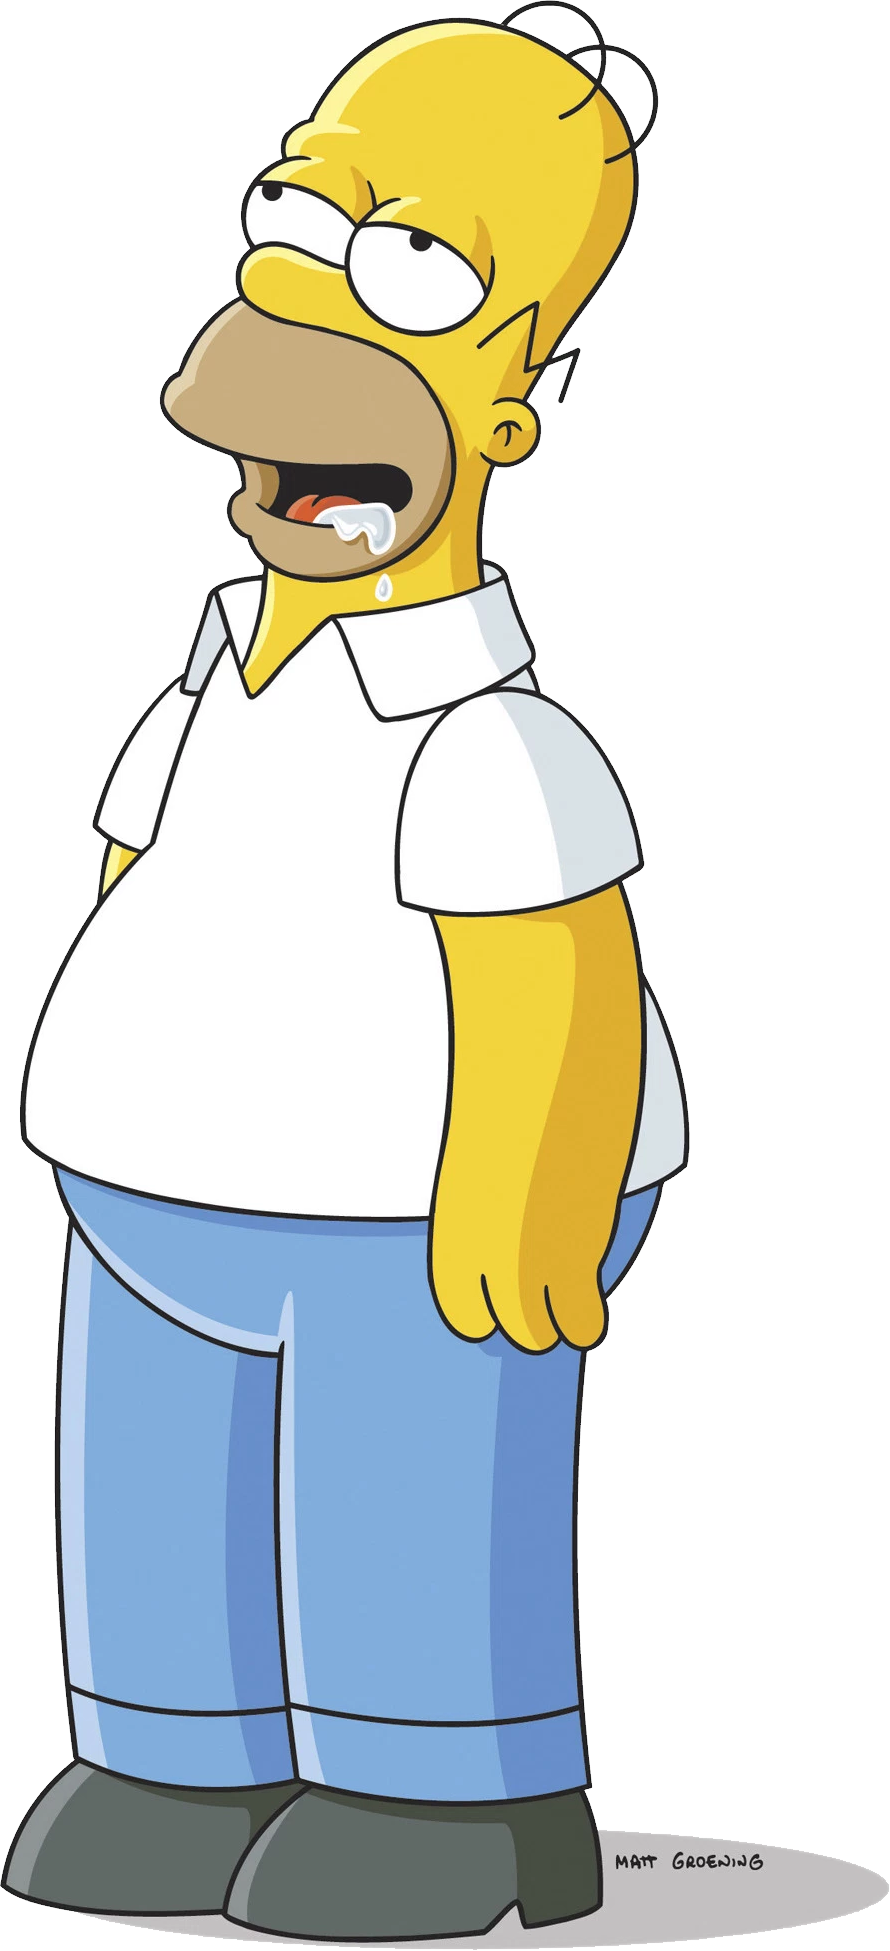 Png . Drivers license clipart homer simpson